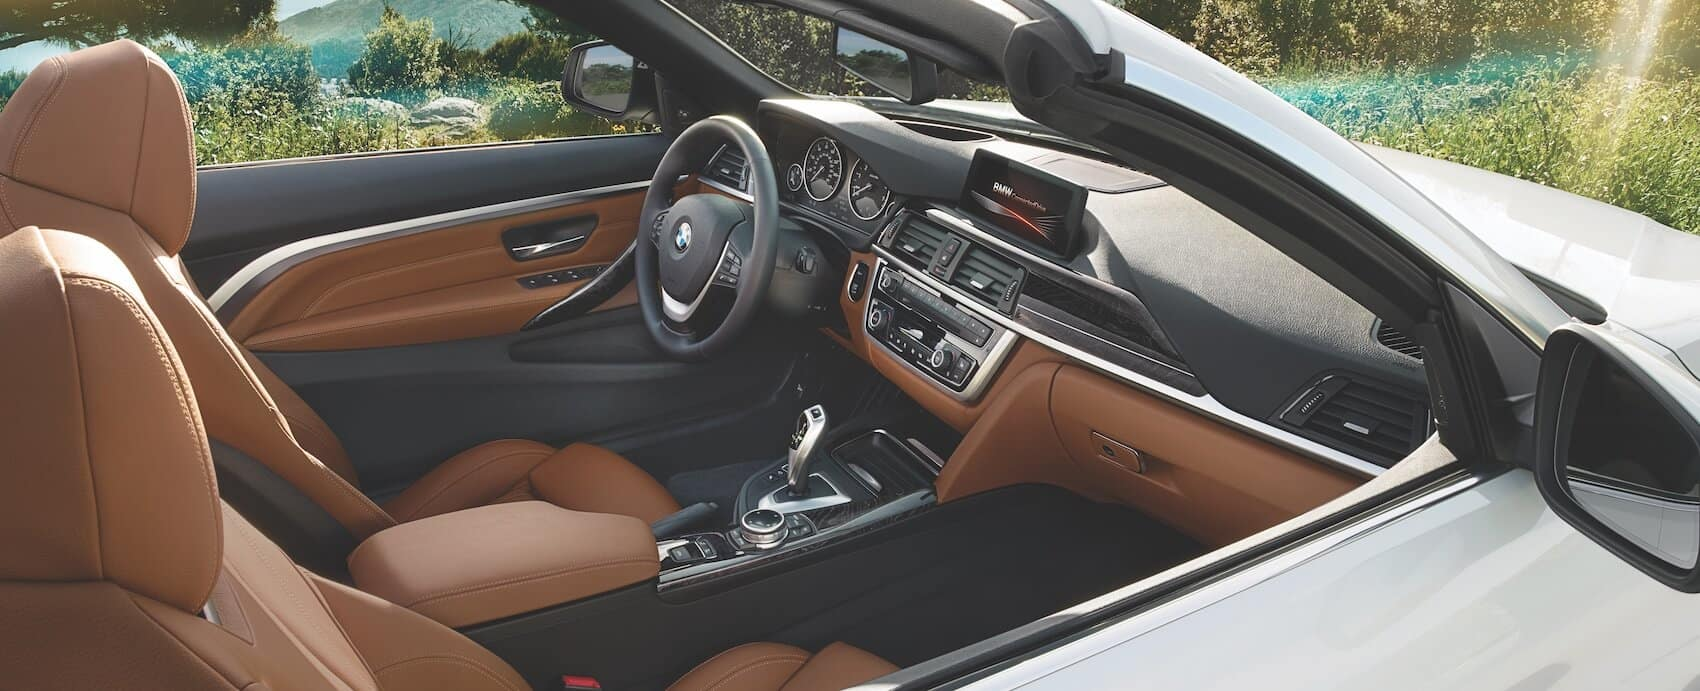 BMW 4 Series Interior Cabin Features